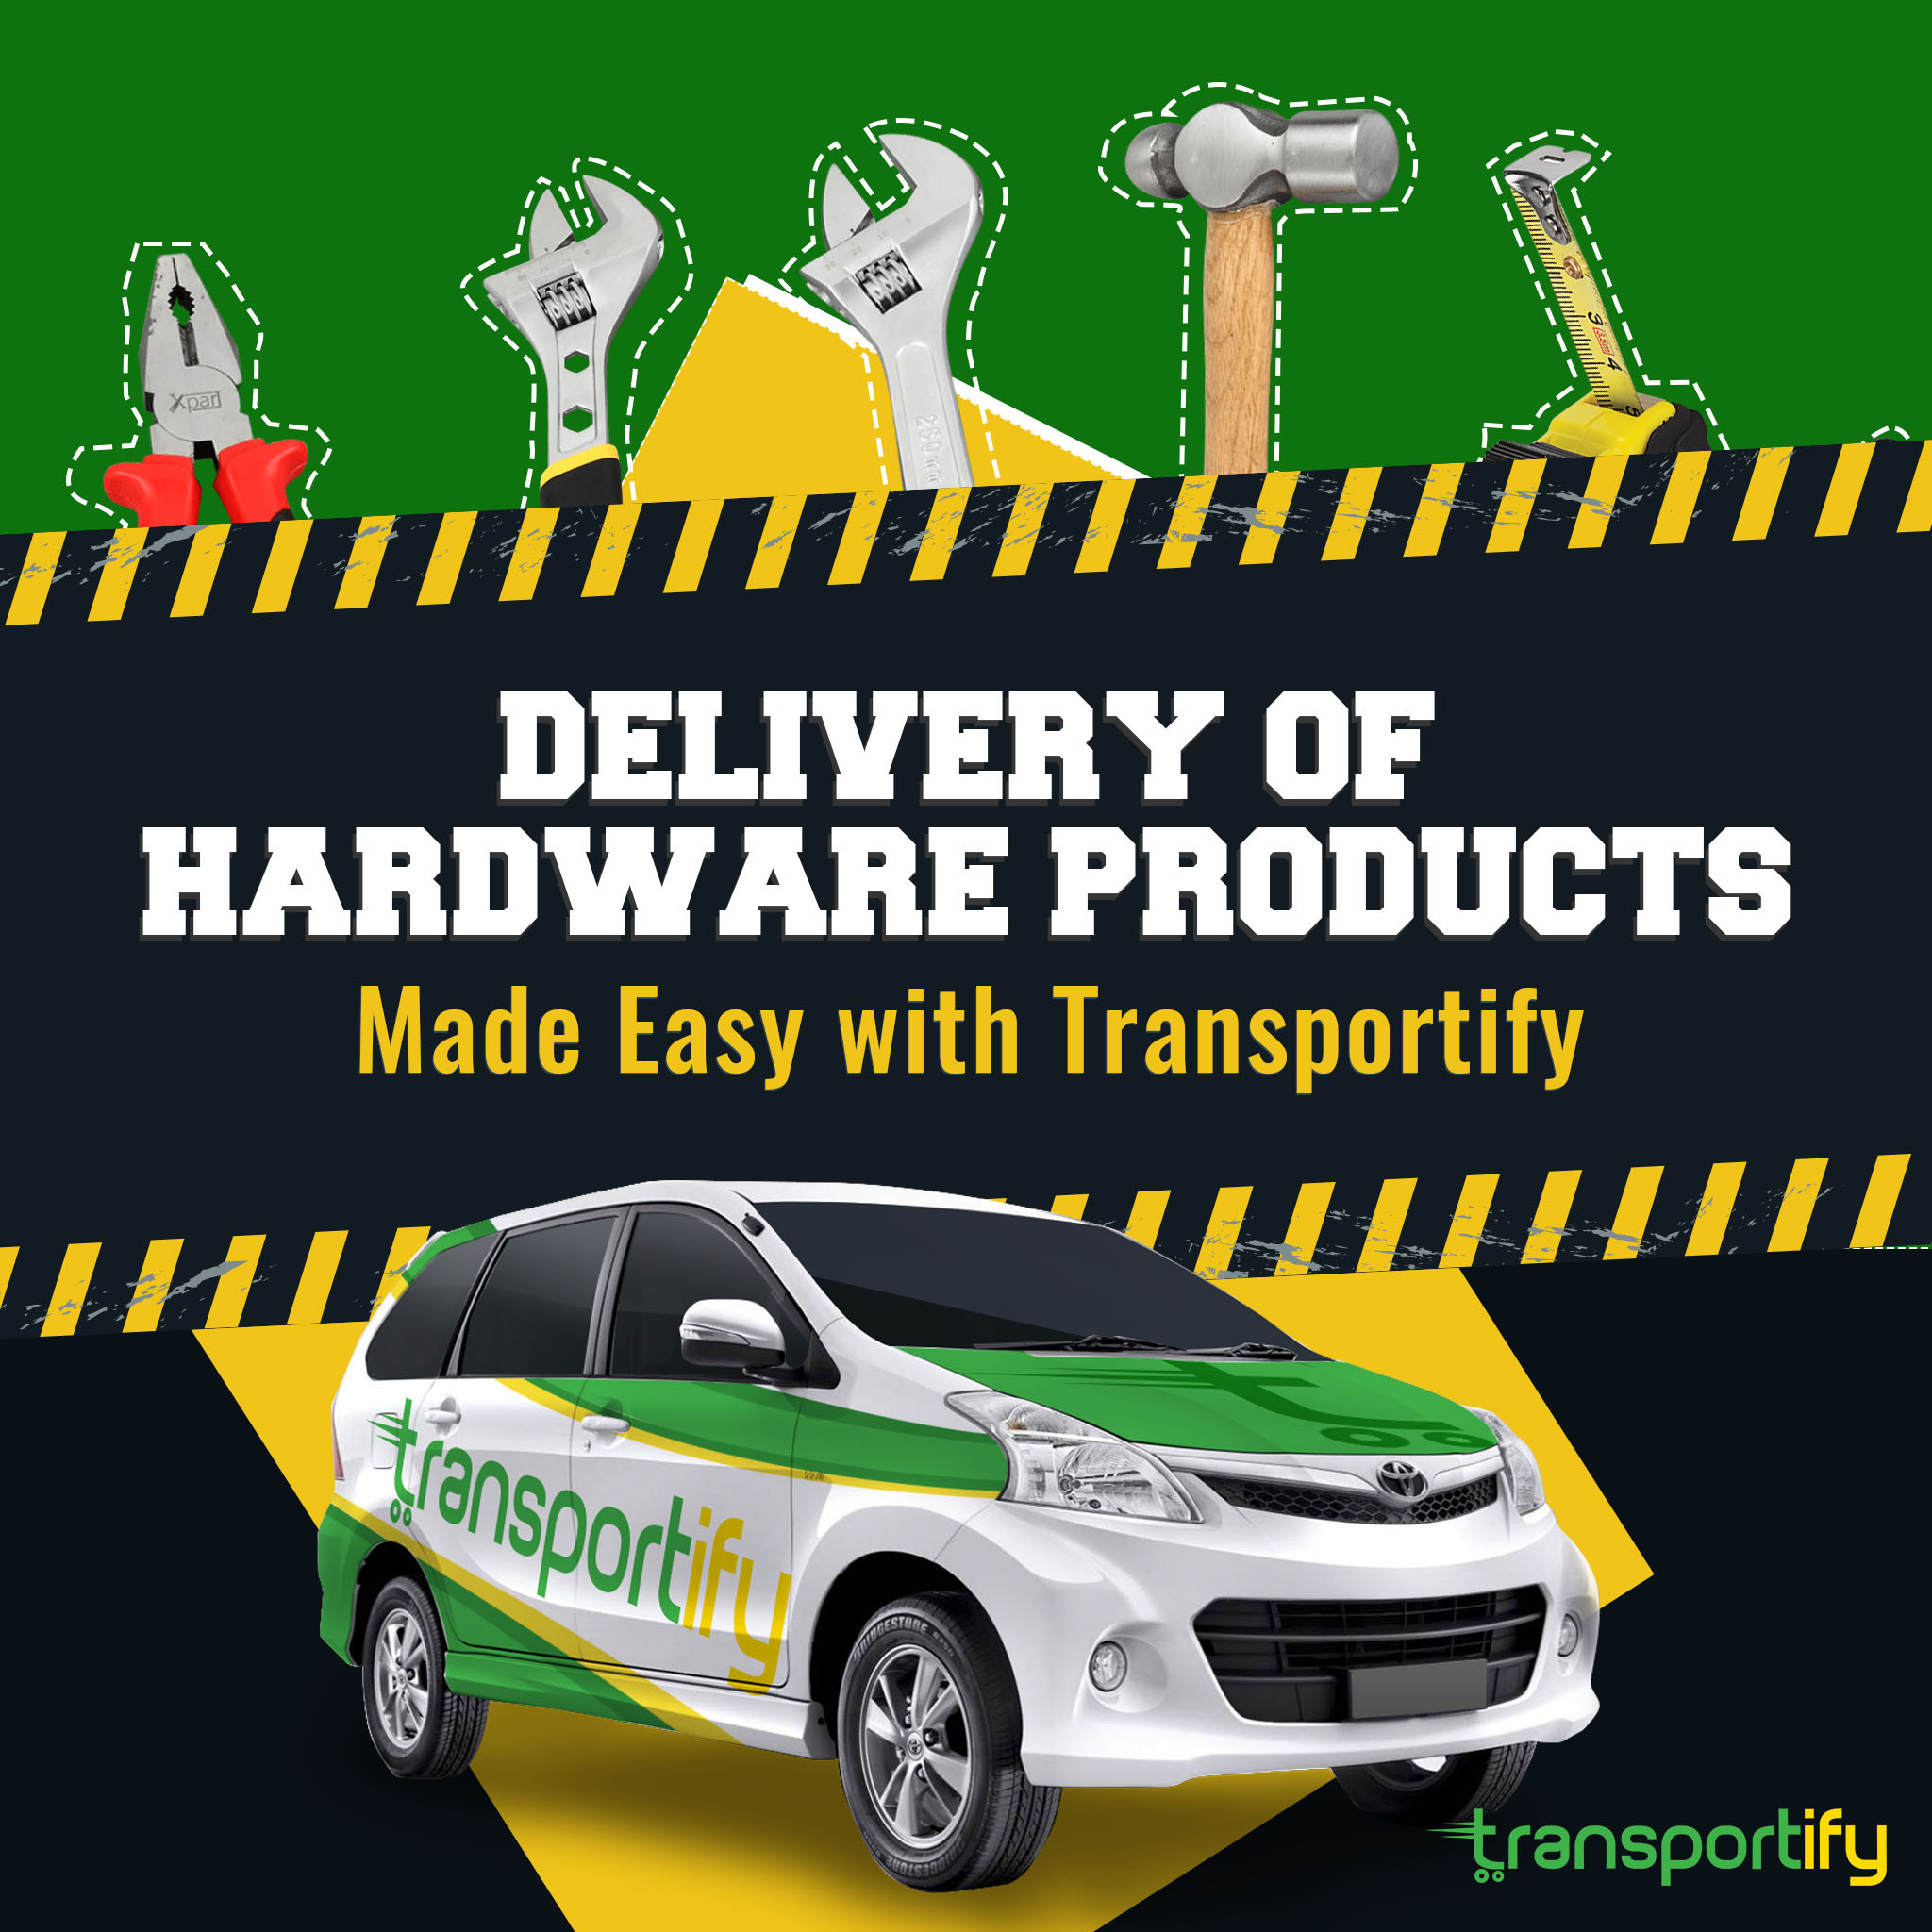 Delivery of Hardware Products Made Easy with TransportifySocial Media image